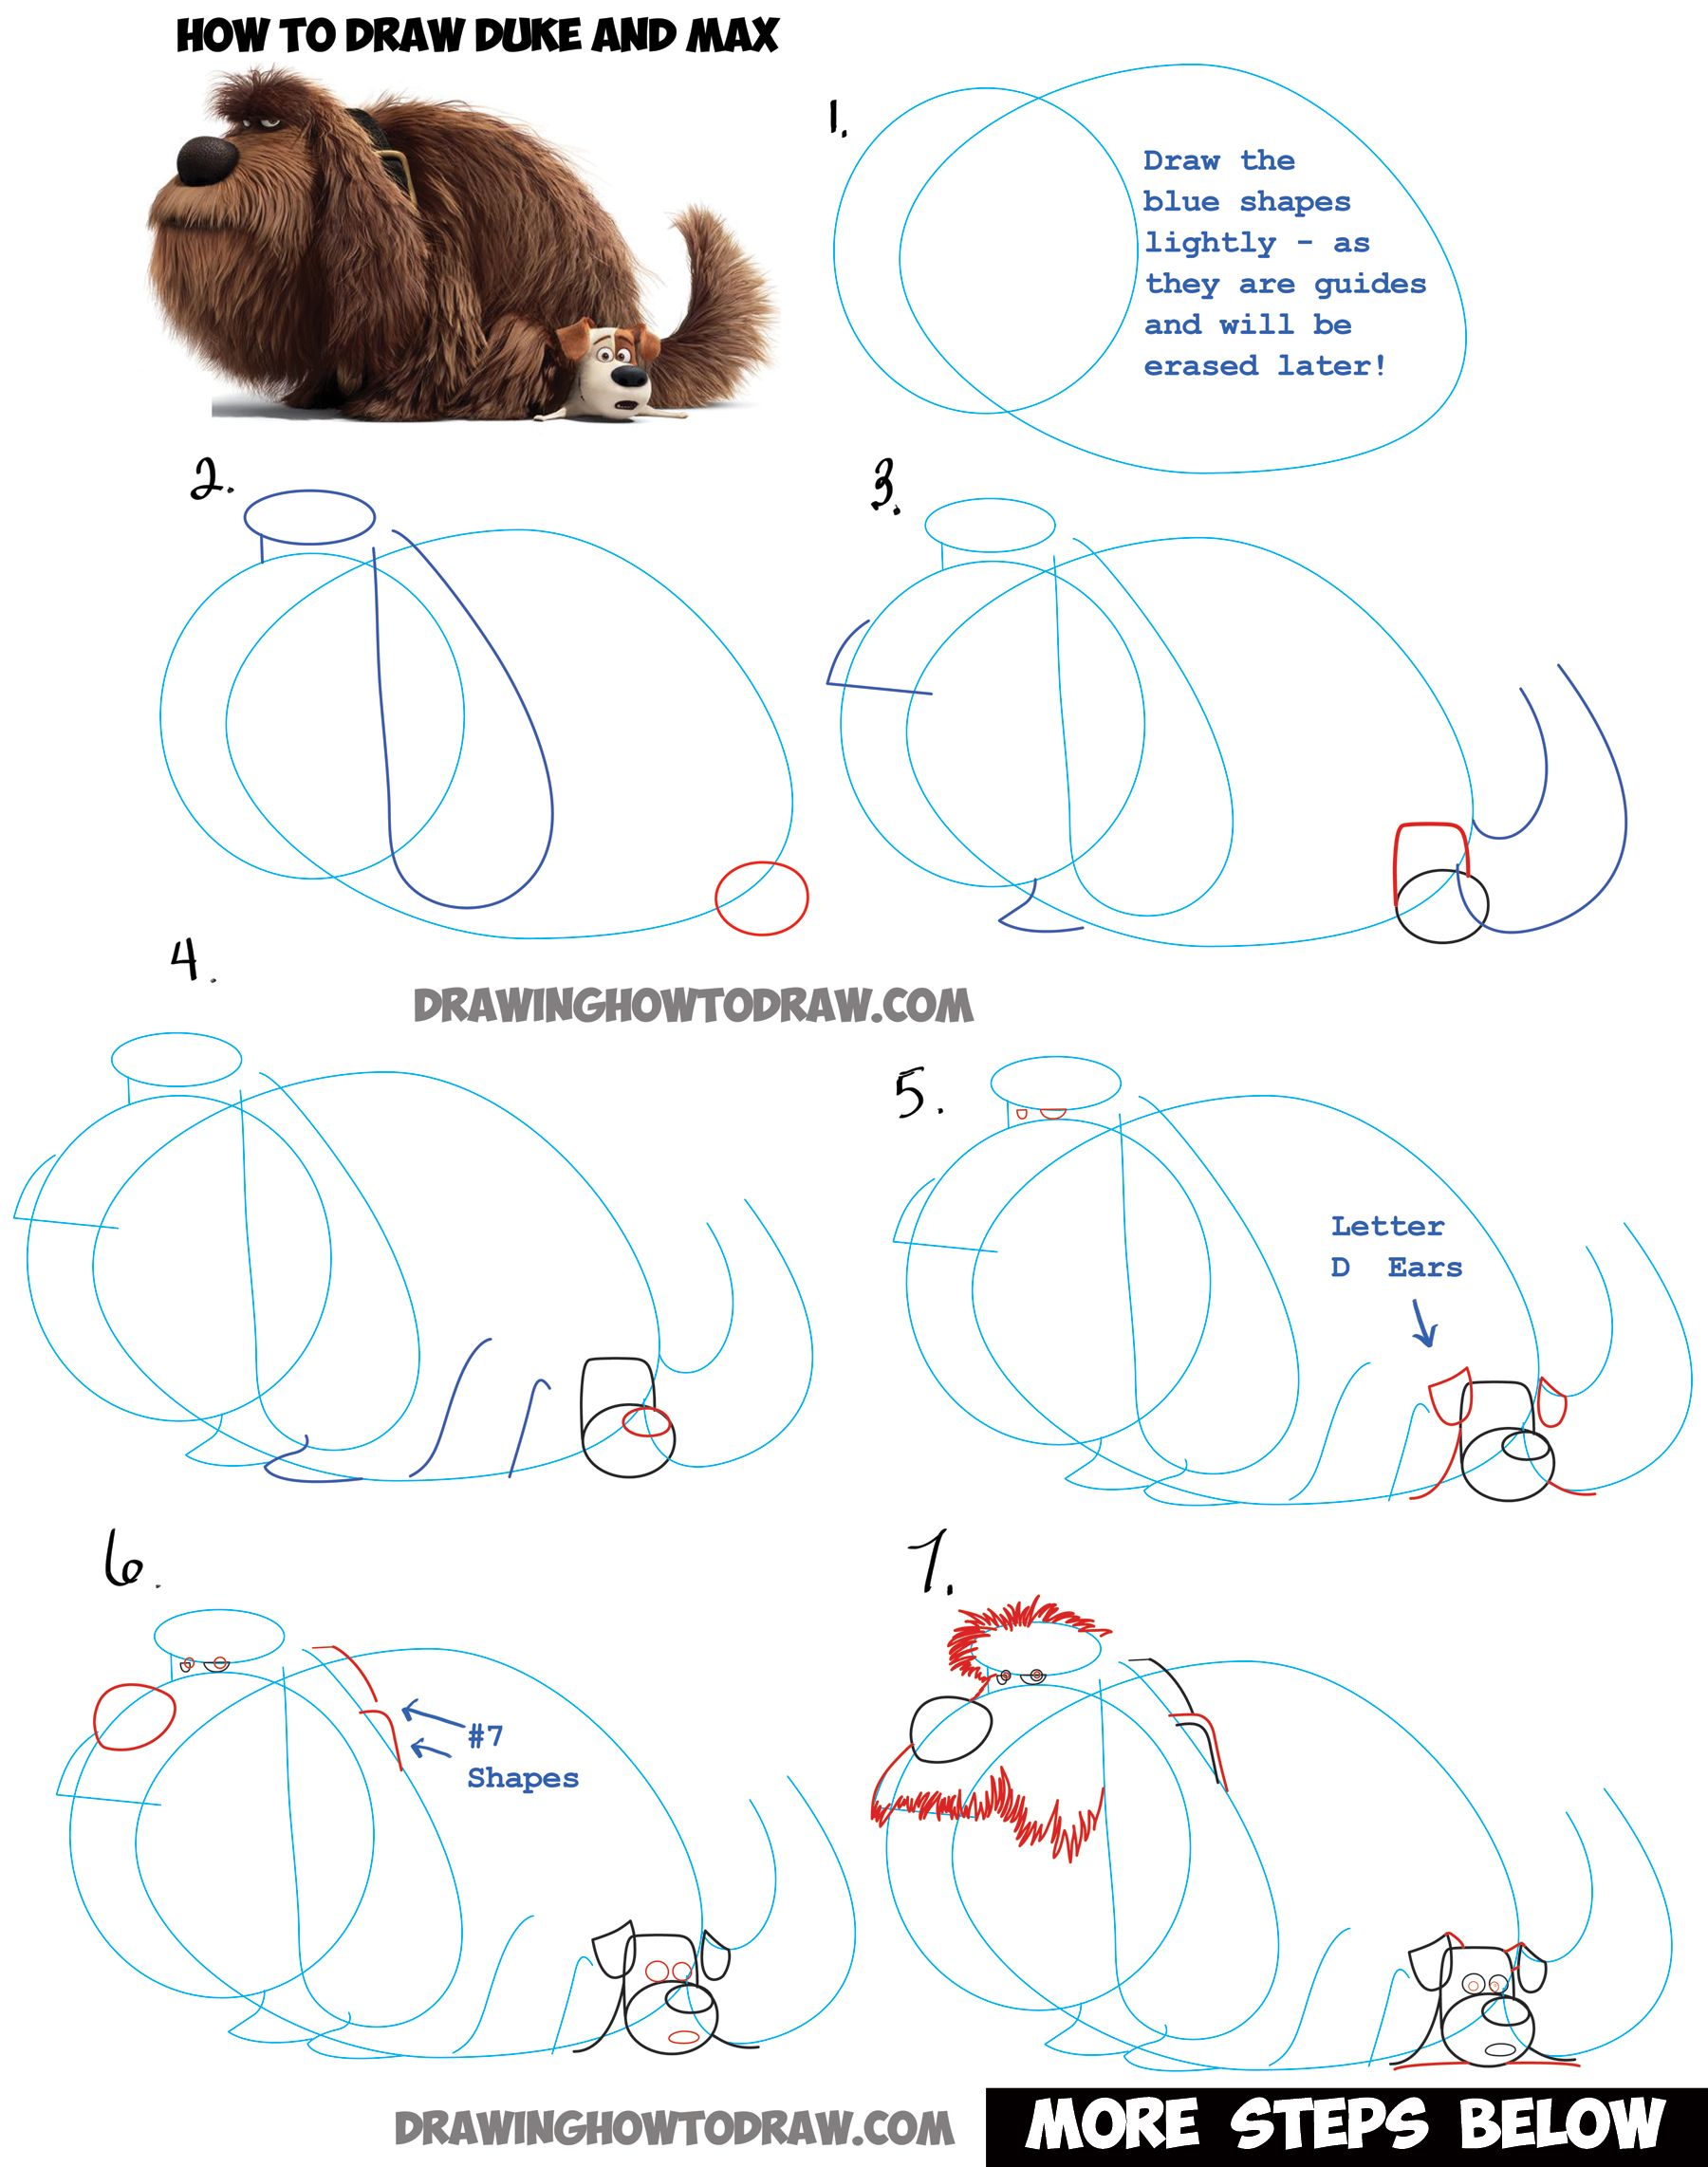 Learn How To Draw Duke Sitting On Max From The Secret Life Of Pets  Step